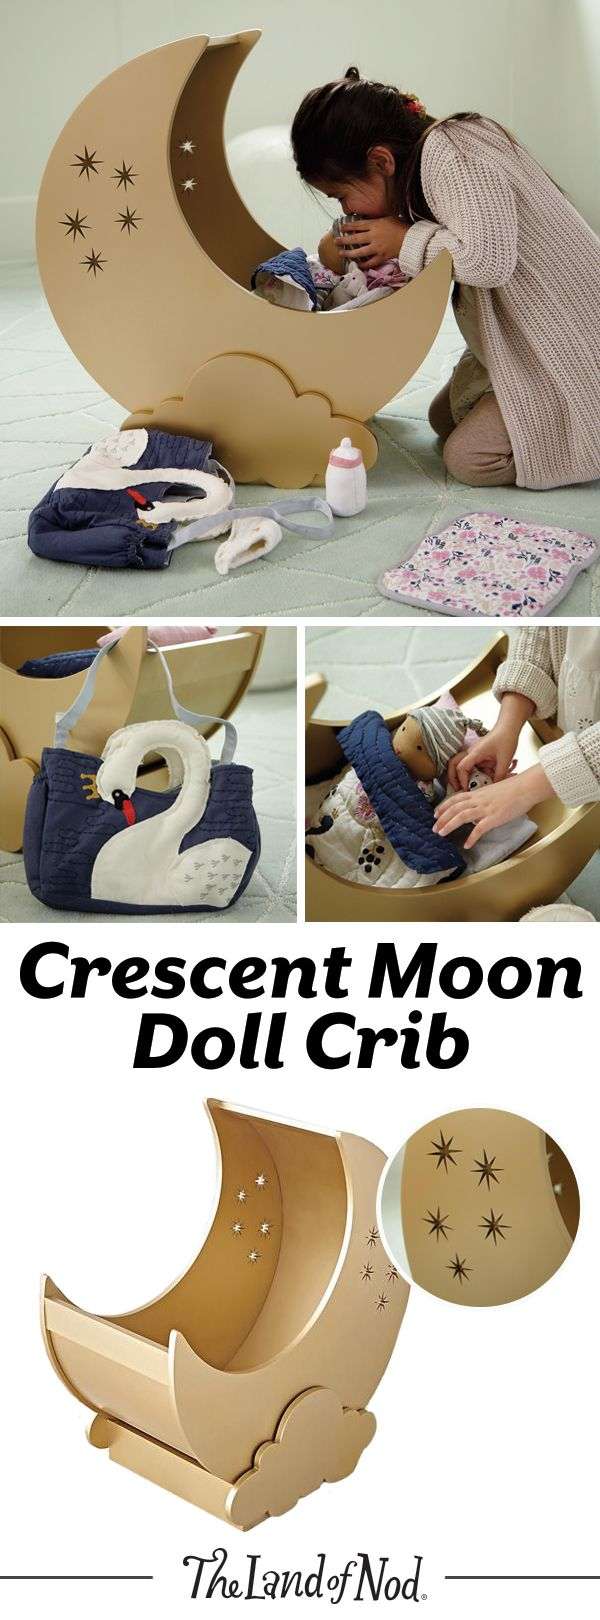 We have a feeling any doll will fall asleep on our Crescent Moon Doll Crib. The moon-shaped crib can rock gently back and forth and has plenty of space for your favorite doll bedding. Kids will love to add this unique piece to their toy collection.